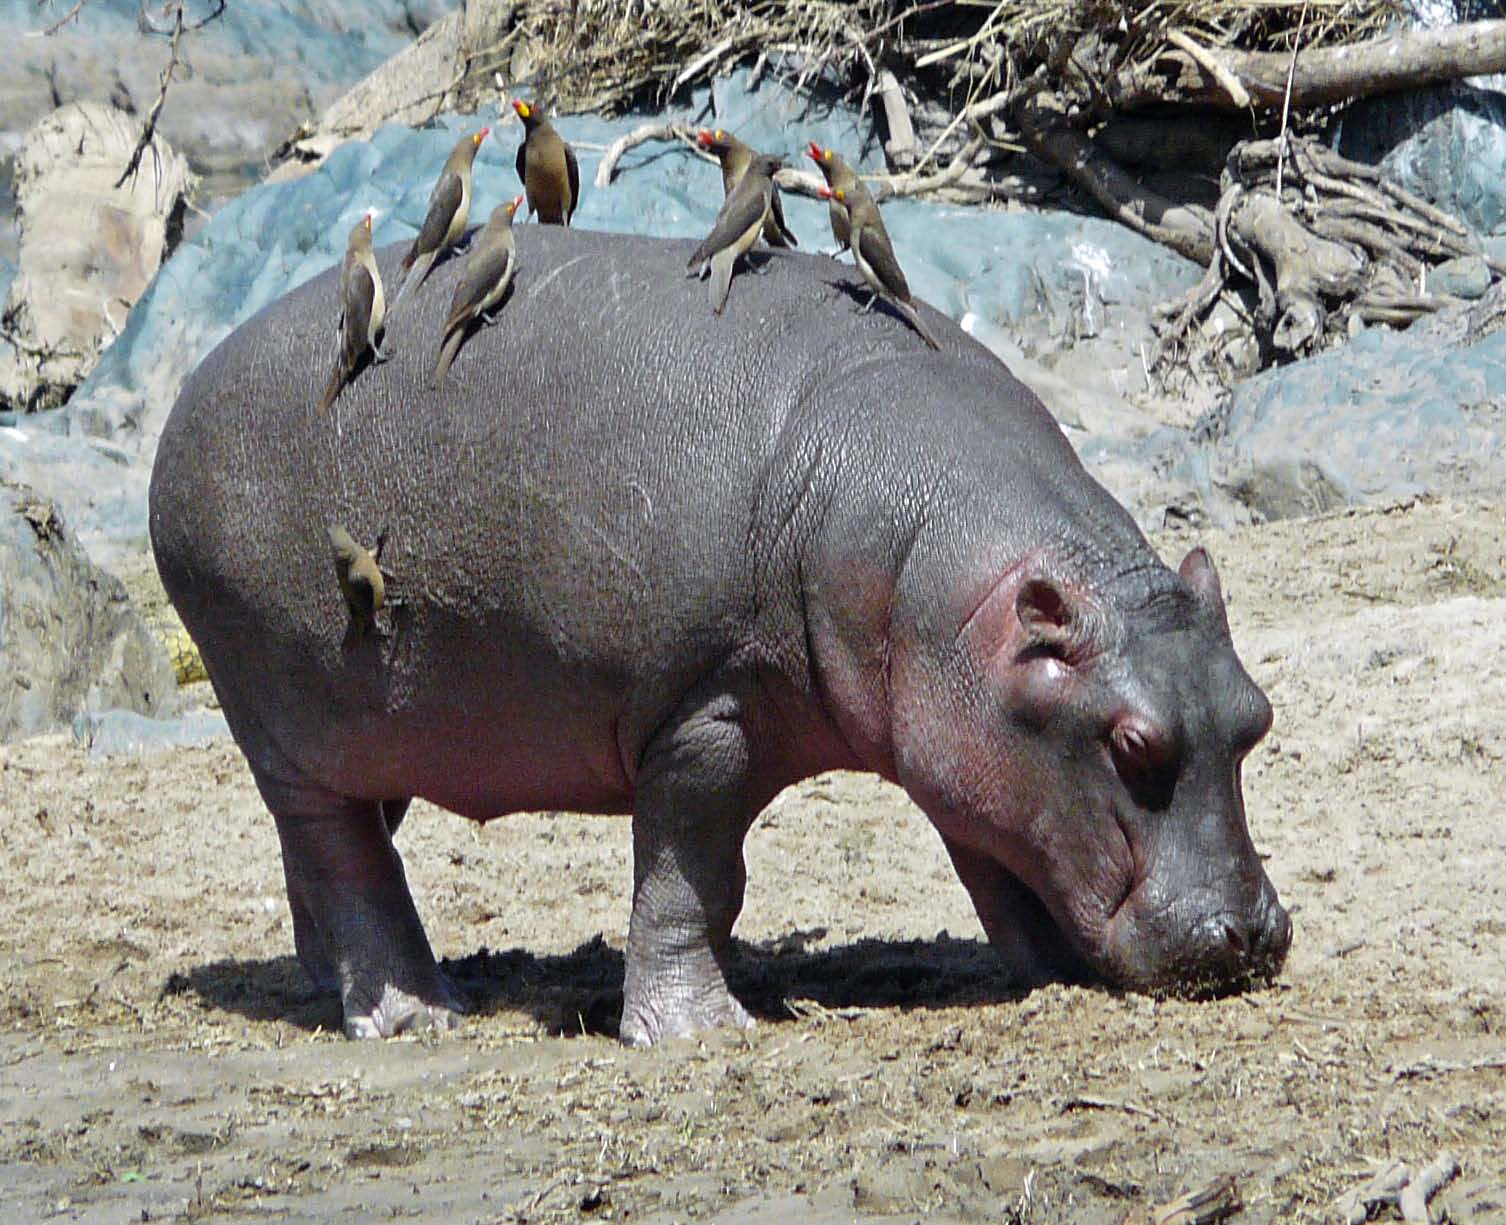 hippo and oxpecker symbiotic relationship